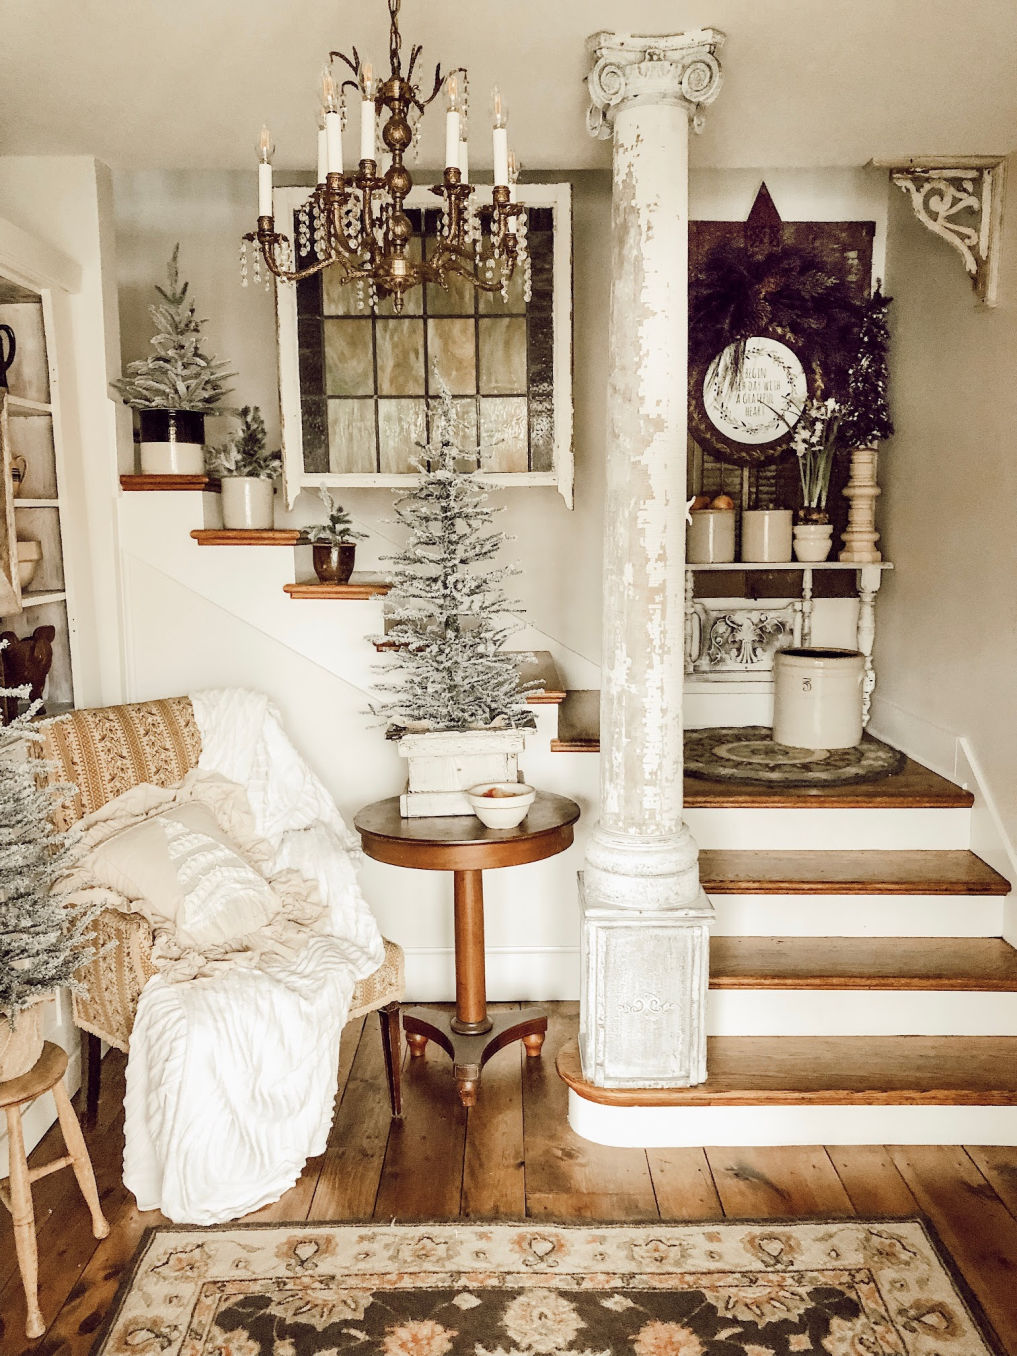 Farmhouse entry decorated for Christmas with mini trees in vintage crocks #christmastree #vintagechristmas #farmhousechristmas #farmhouse #entry #vintagedecor #neutraldecor